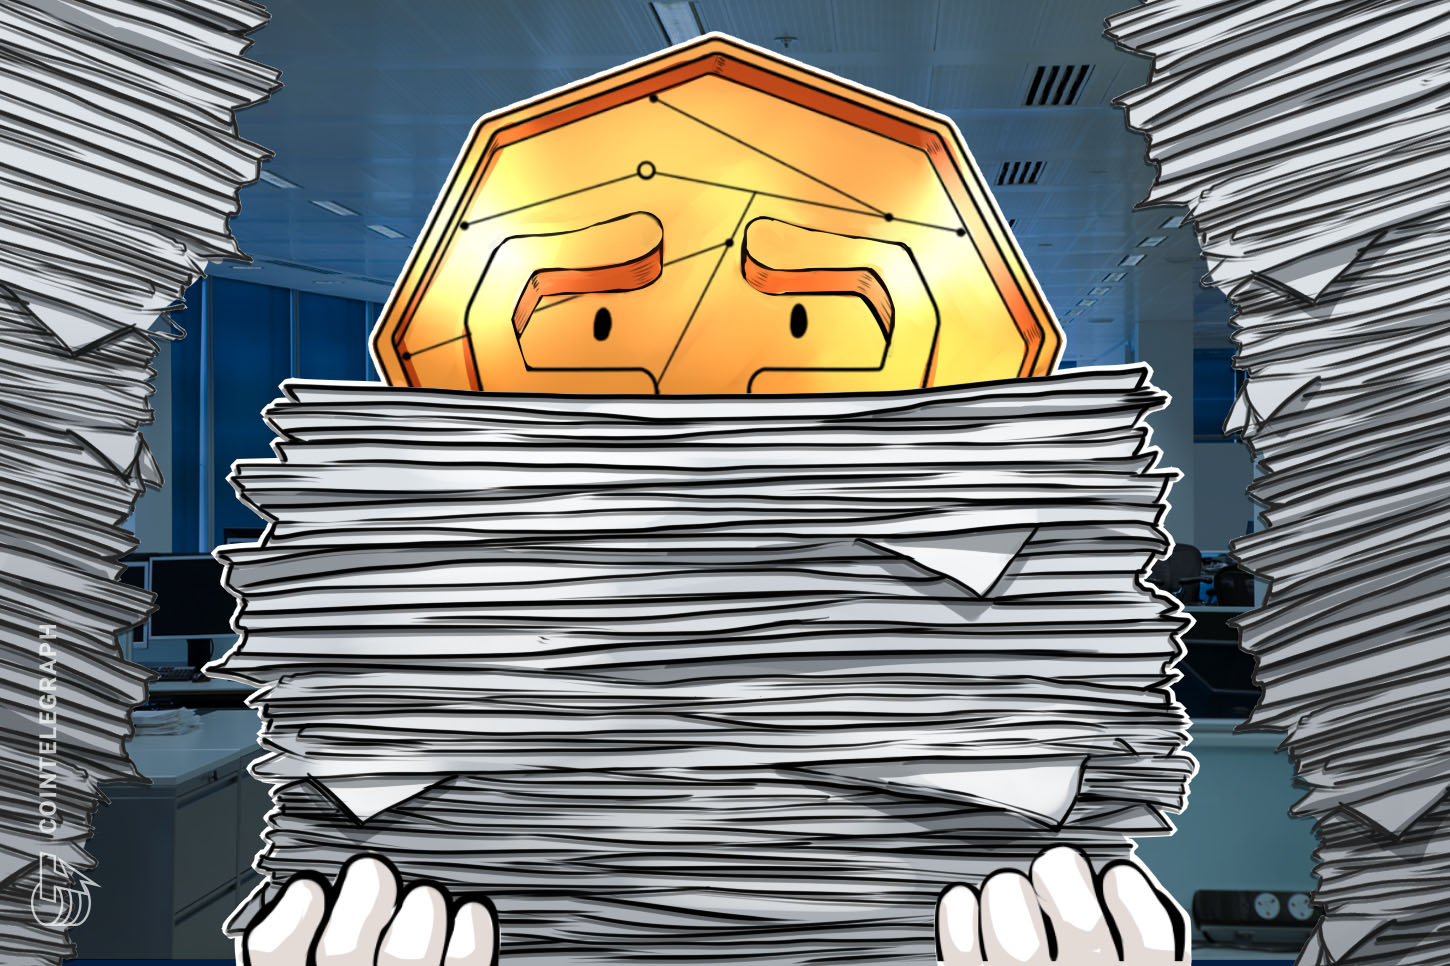 Regulatory clarity for crypto would take 3 to 5 years, FTX CEO says